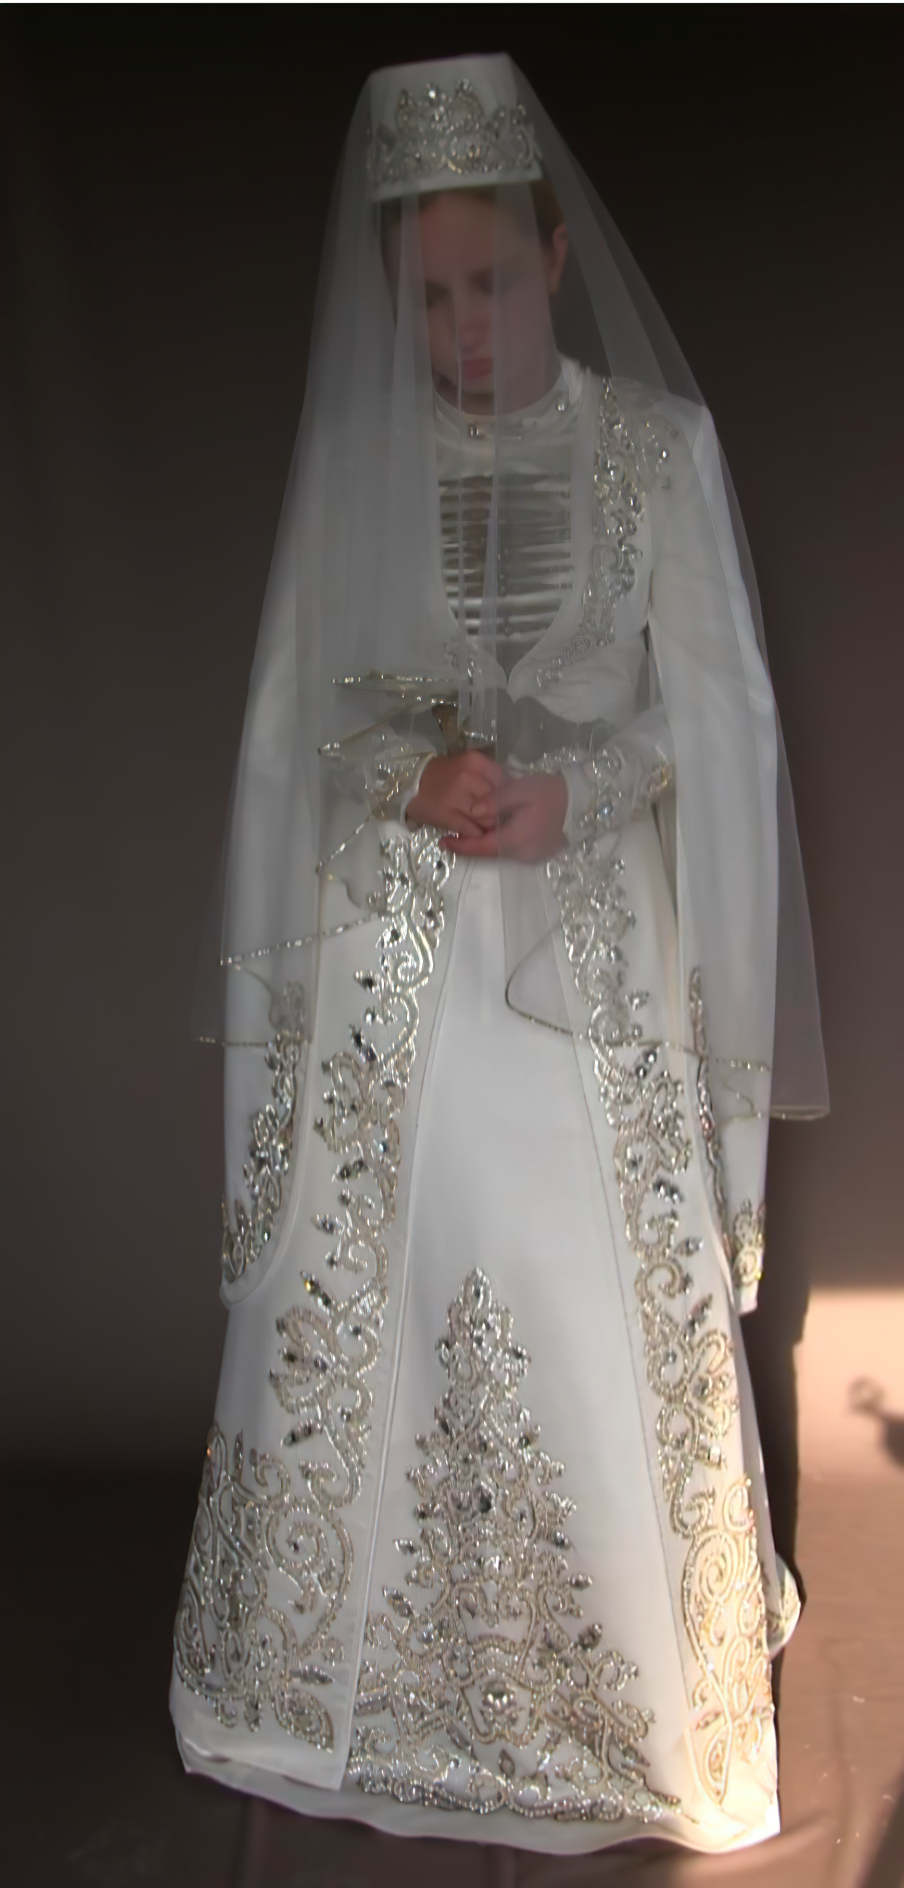 From the performance 6/8, 2016. The work is based on a wedding tradition shared by Ossetians and Chechens, which sees the bride silently stand in the corner for up to 10 hours during her own wedding, as a sign of respect to the groom's family